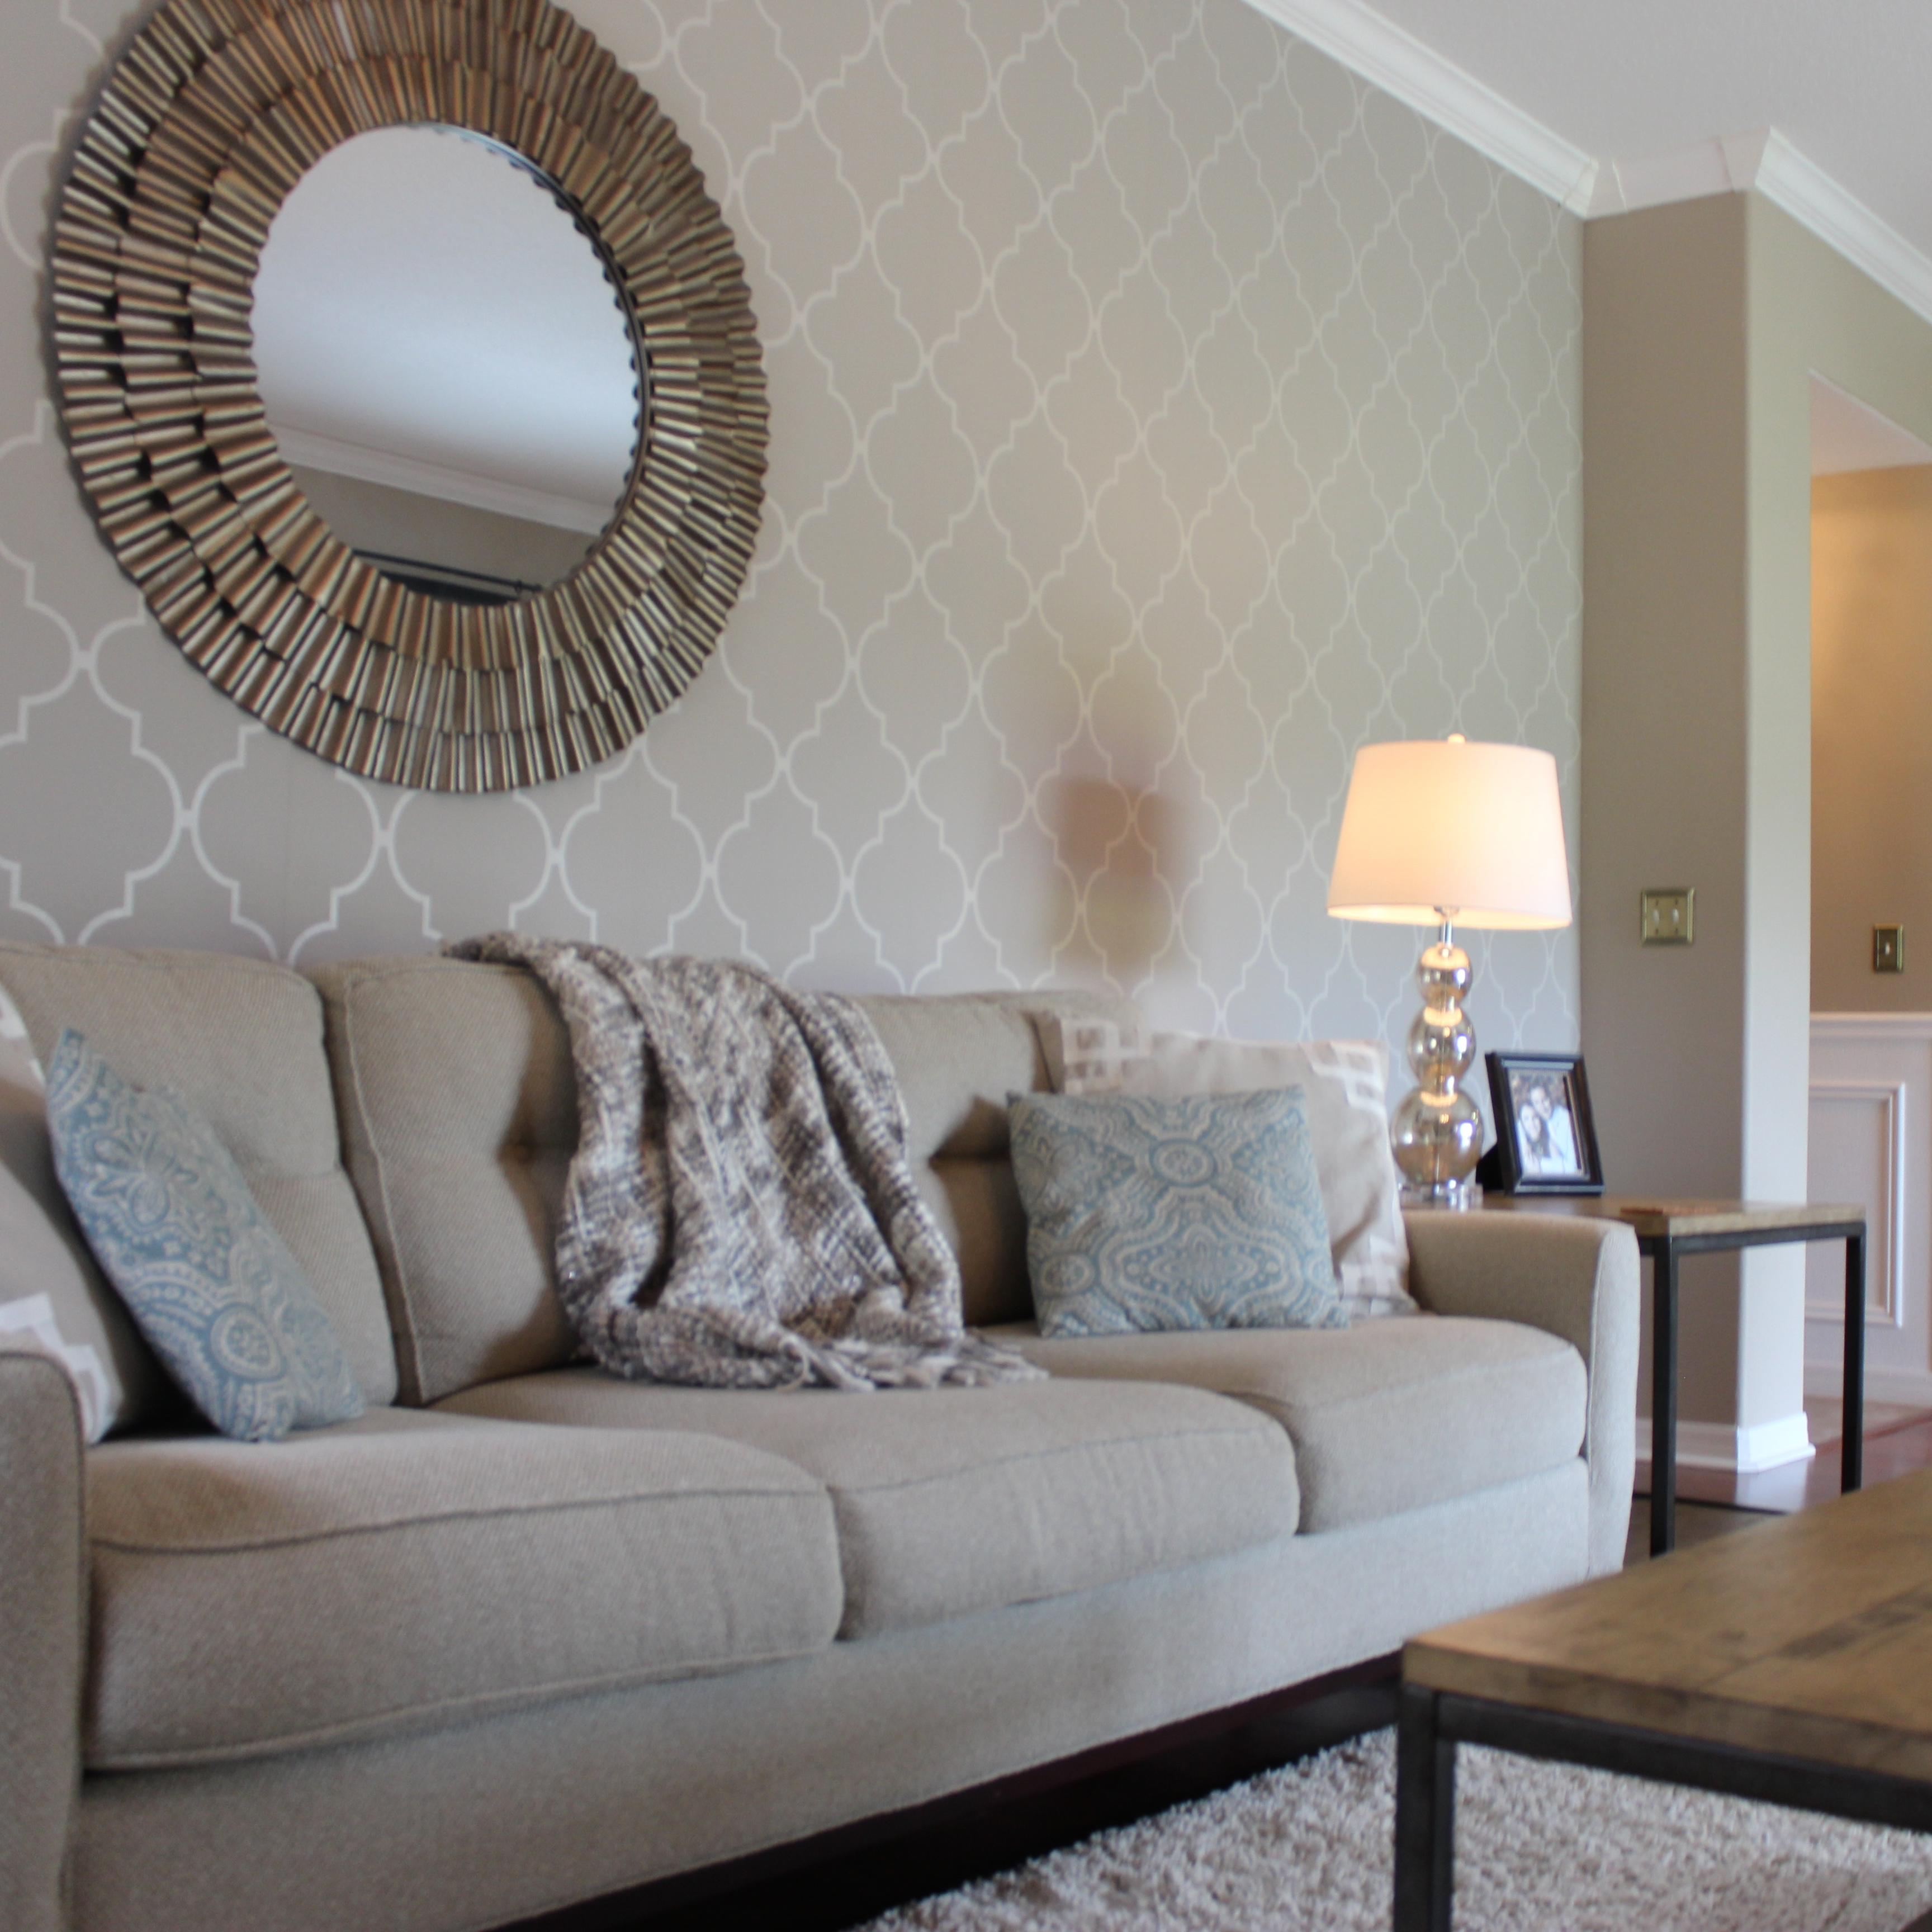 3 Ways to Create an Impactful Accent Wall